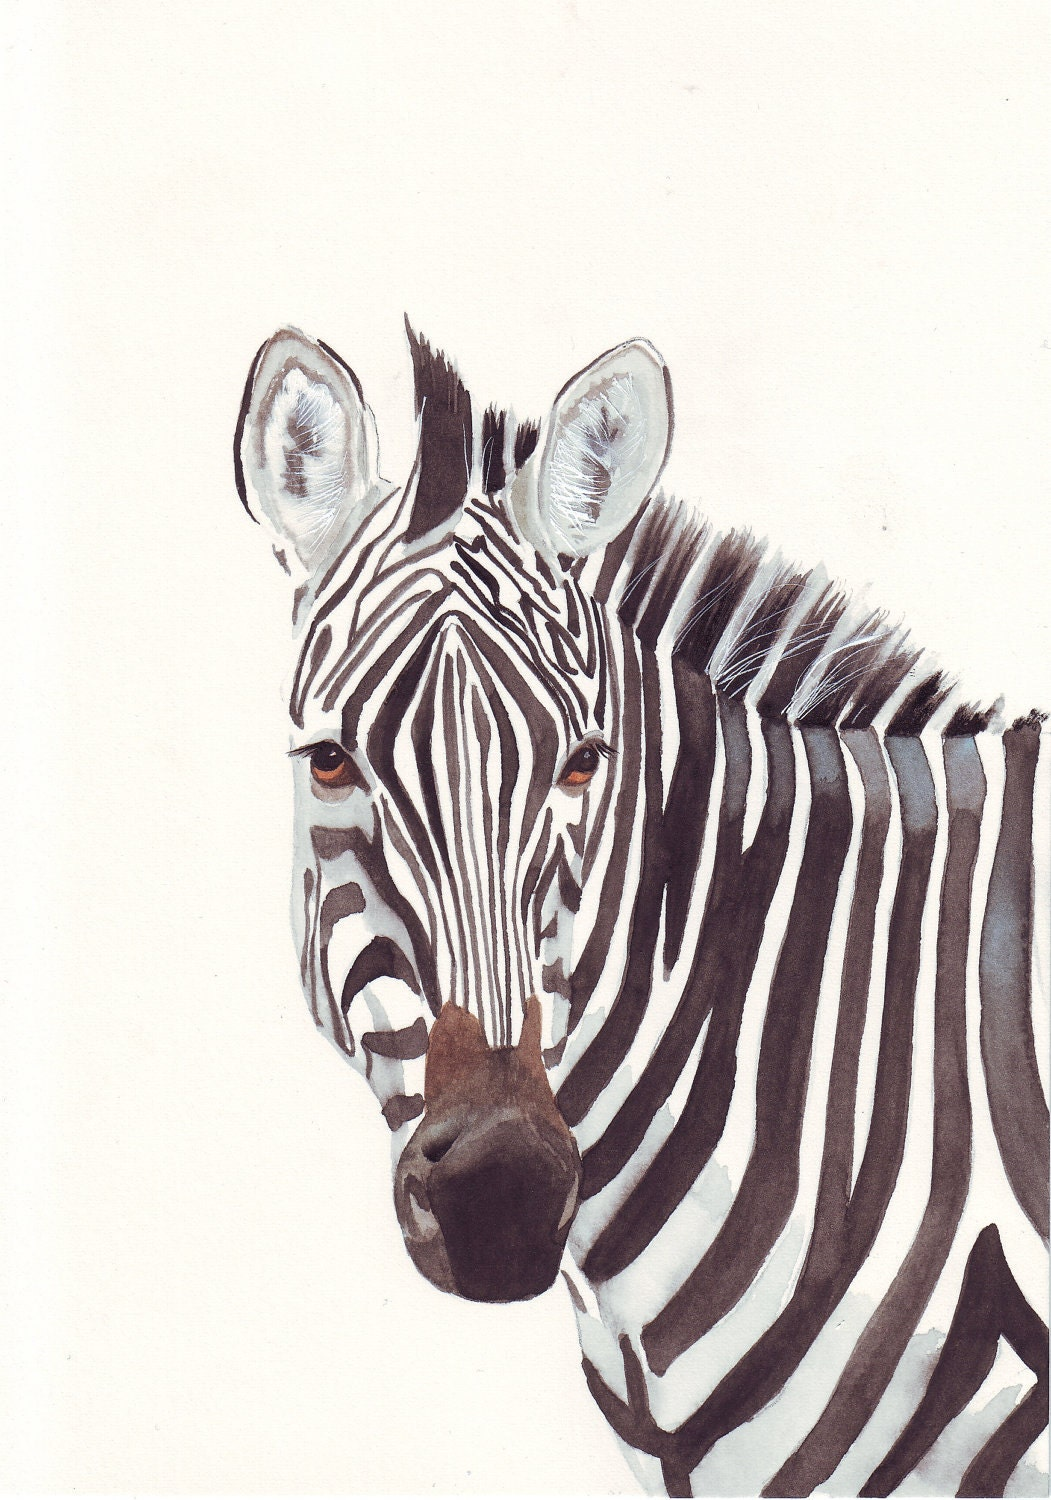 Zebra ART No. 065 Zoo animal art  Large Print of watercolor painting